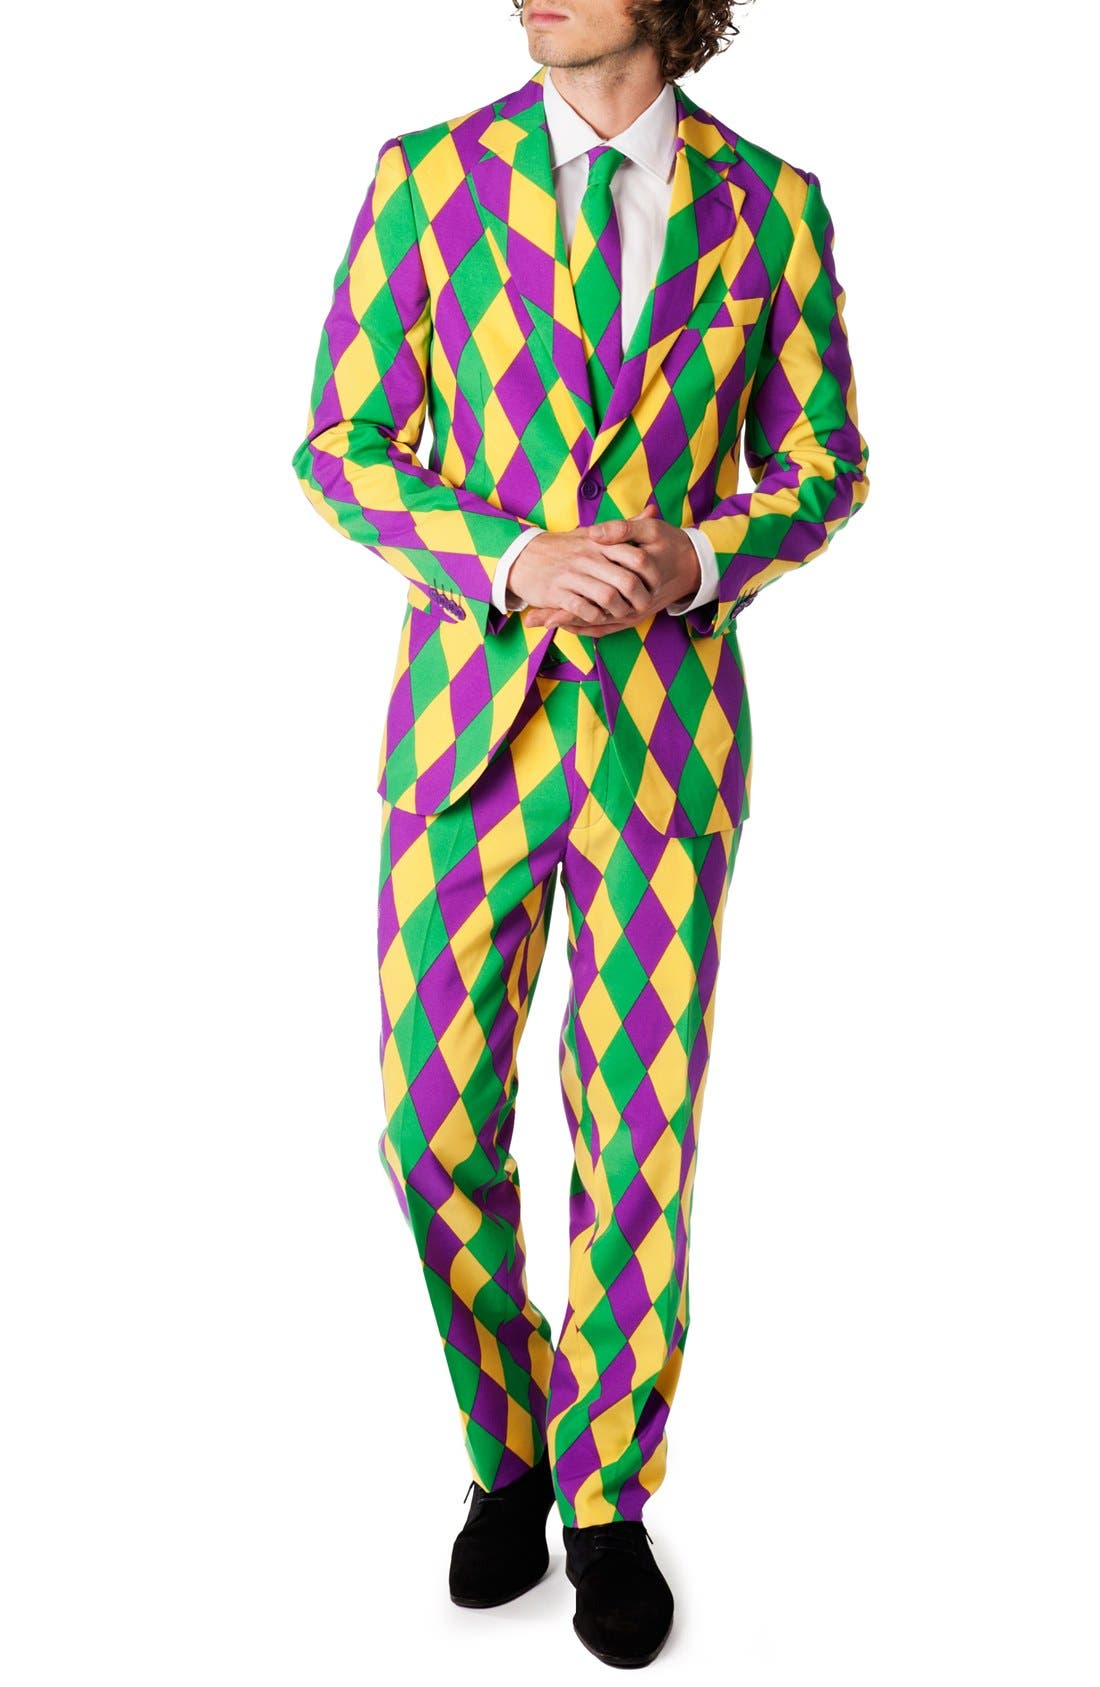 'Harleking' Trim Fit Suit with Tie,                             Main thumbnail 1, color,                             Green/ Purple/ Yellow